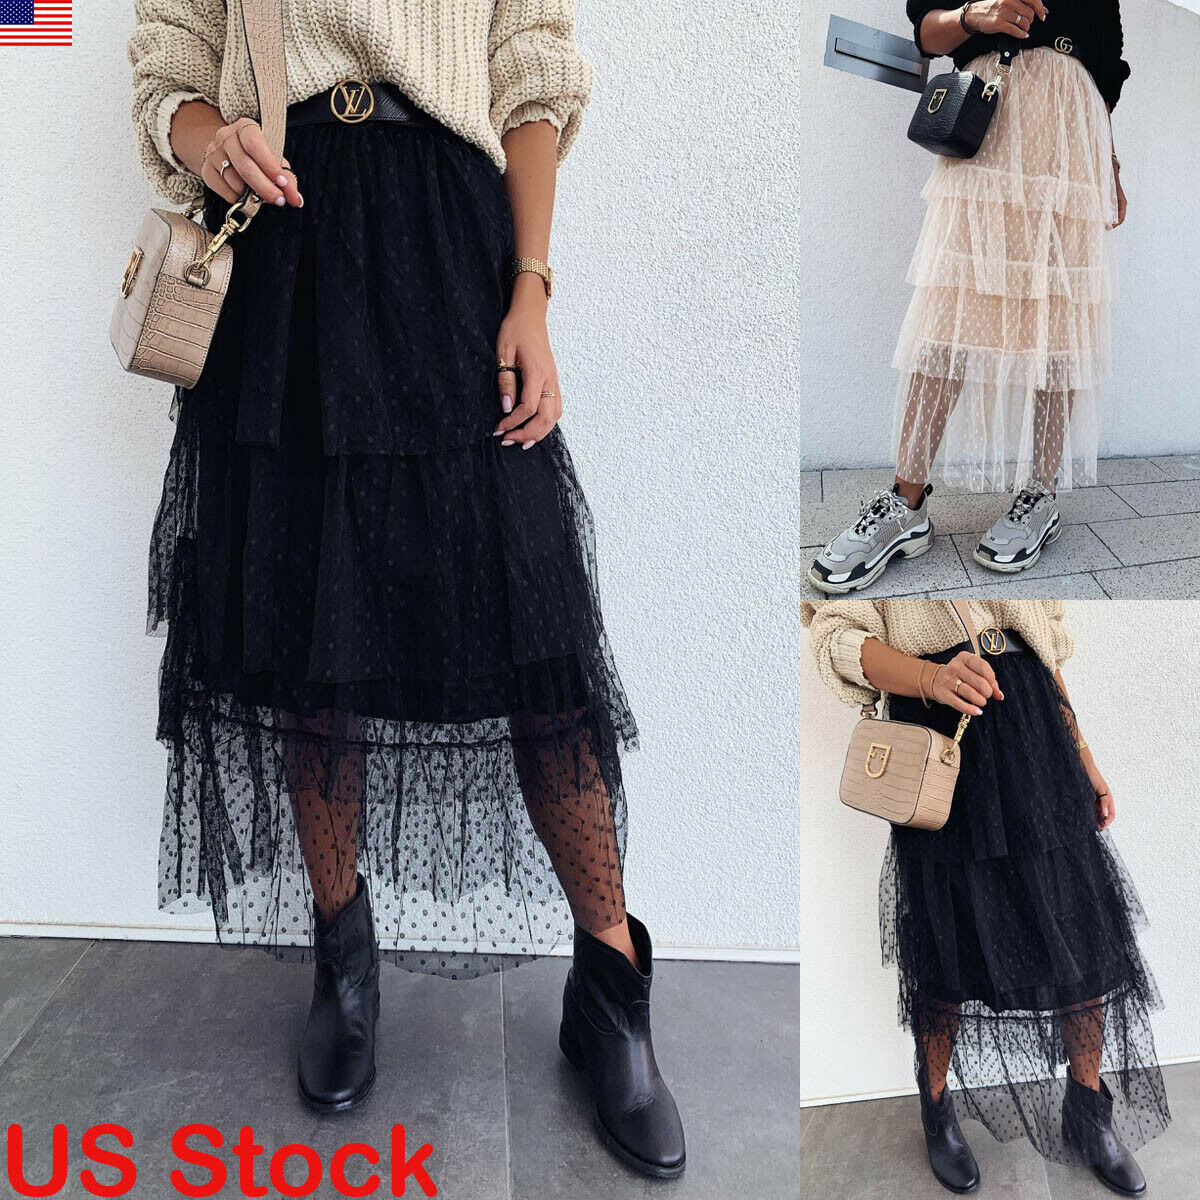 New Fashion Women Ladies Layers Tulle Dot Skirt Long Skirts Princess Girls Ballet Tutu Dance Skirt Black White